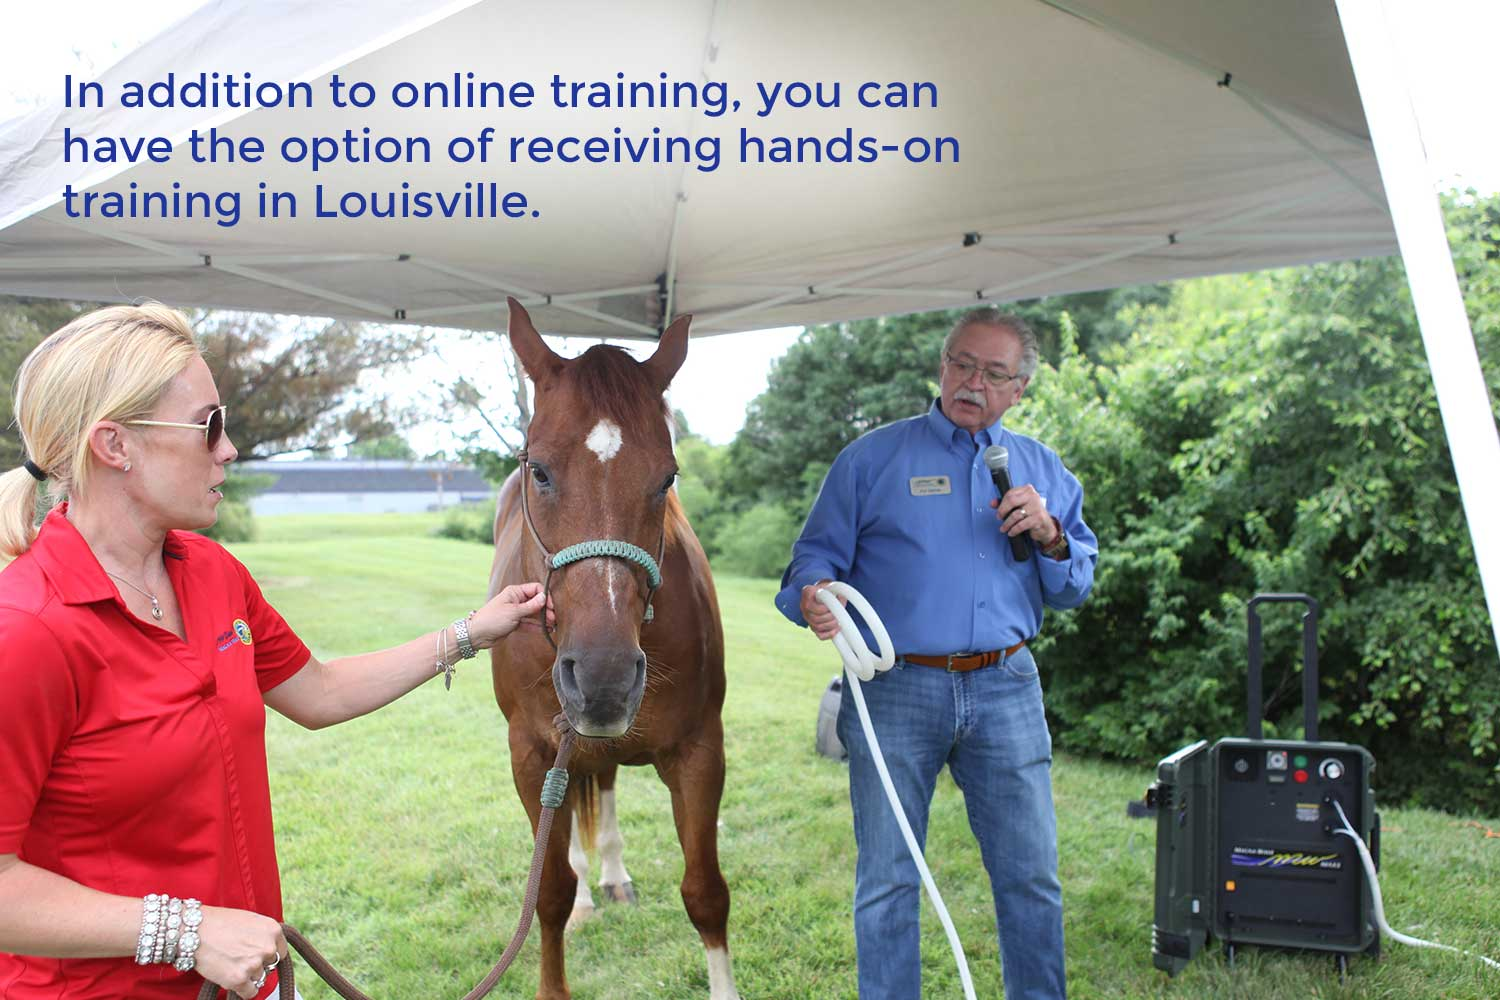 In addition to online training, you can have the option of receiving hands-on training in Louisville